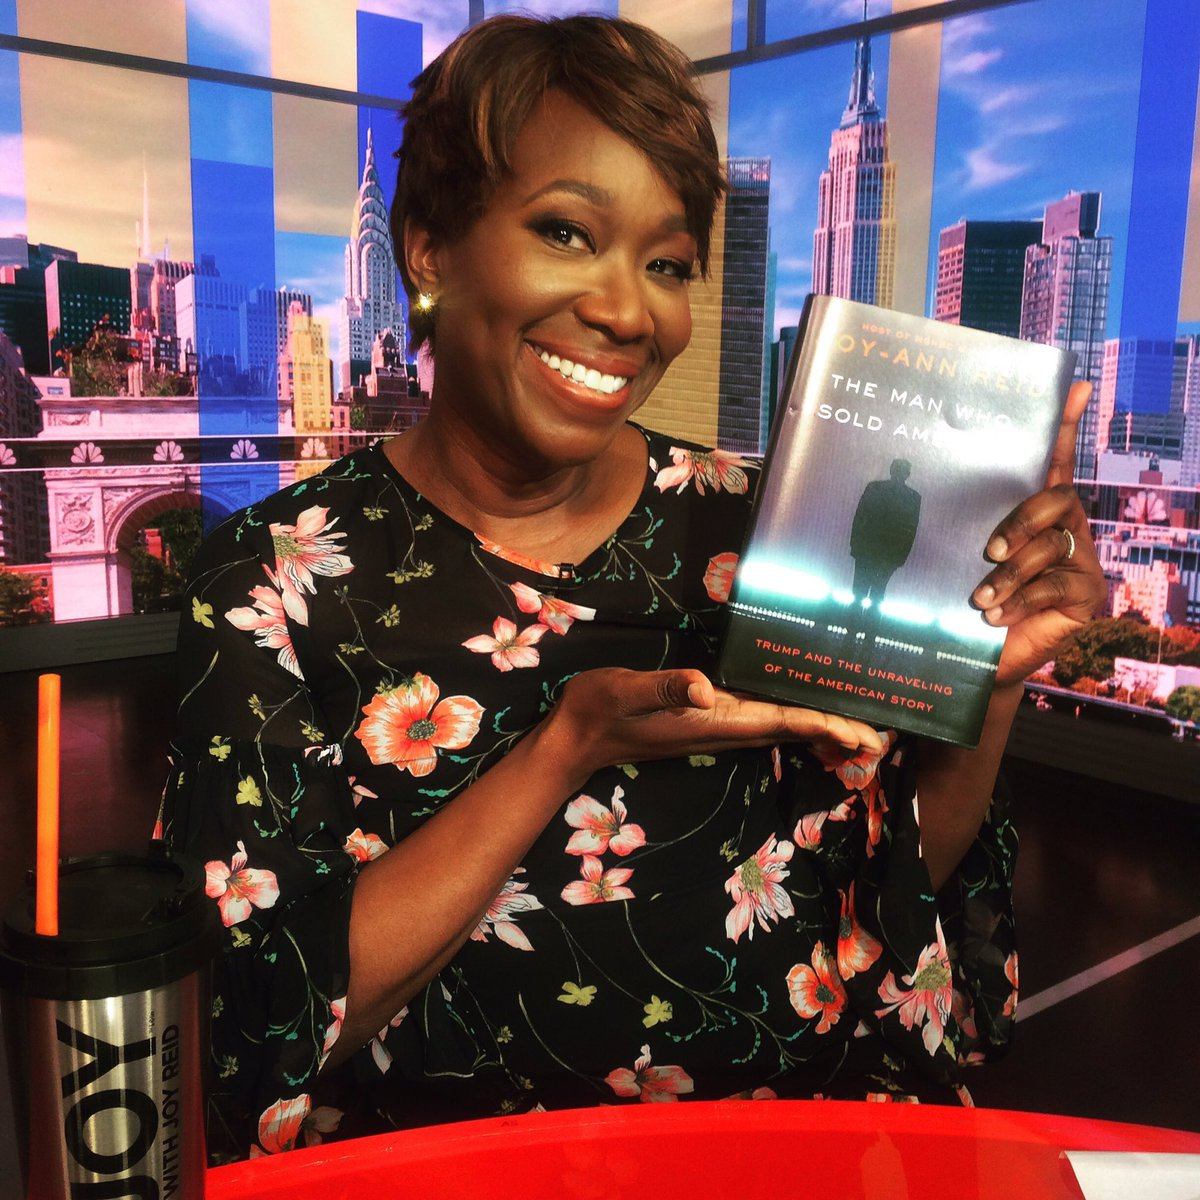 .@amjoyshow is coming up! See you all very soon #reiders at 10 AM ET this #SundayMorning on @MSNBC